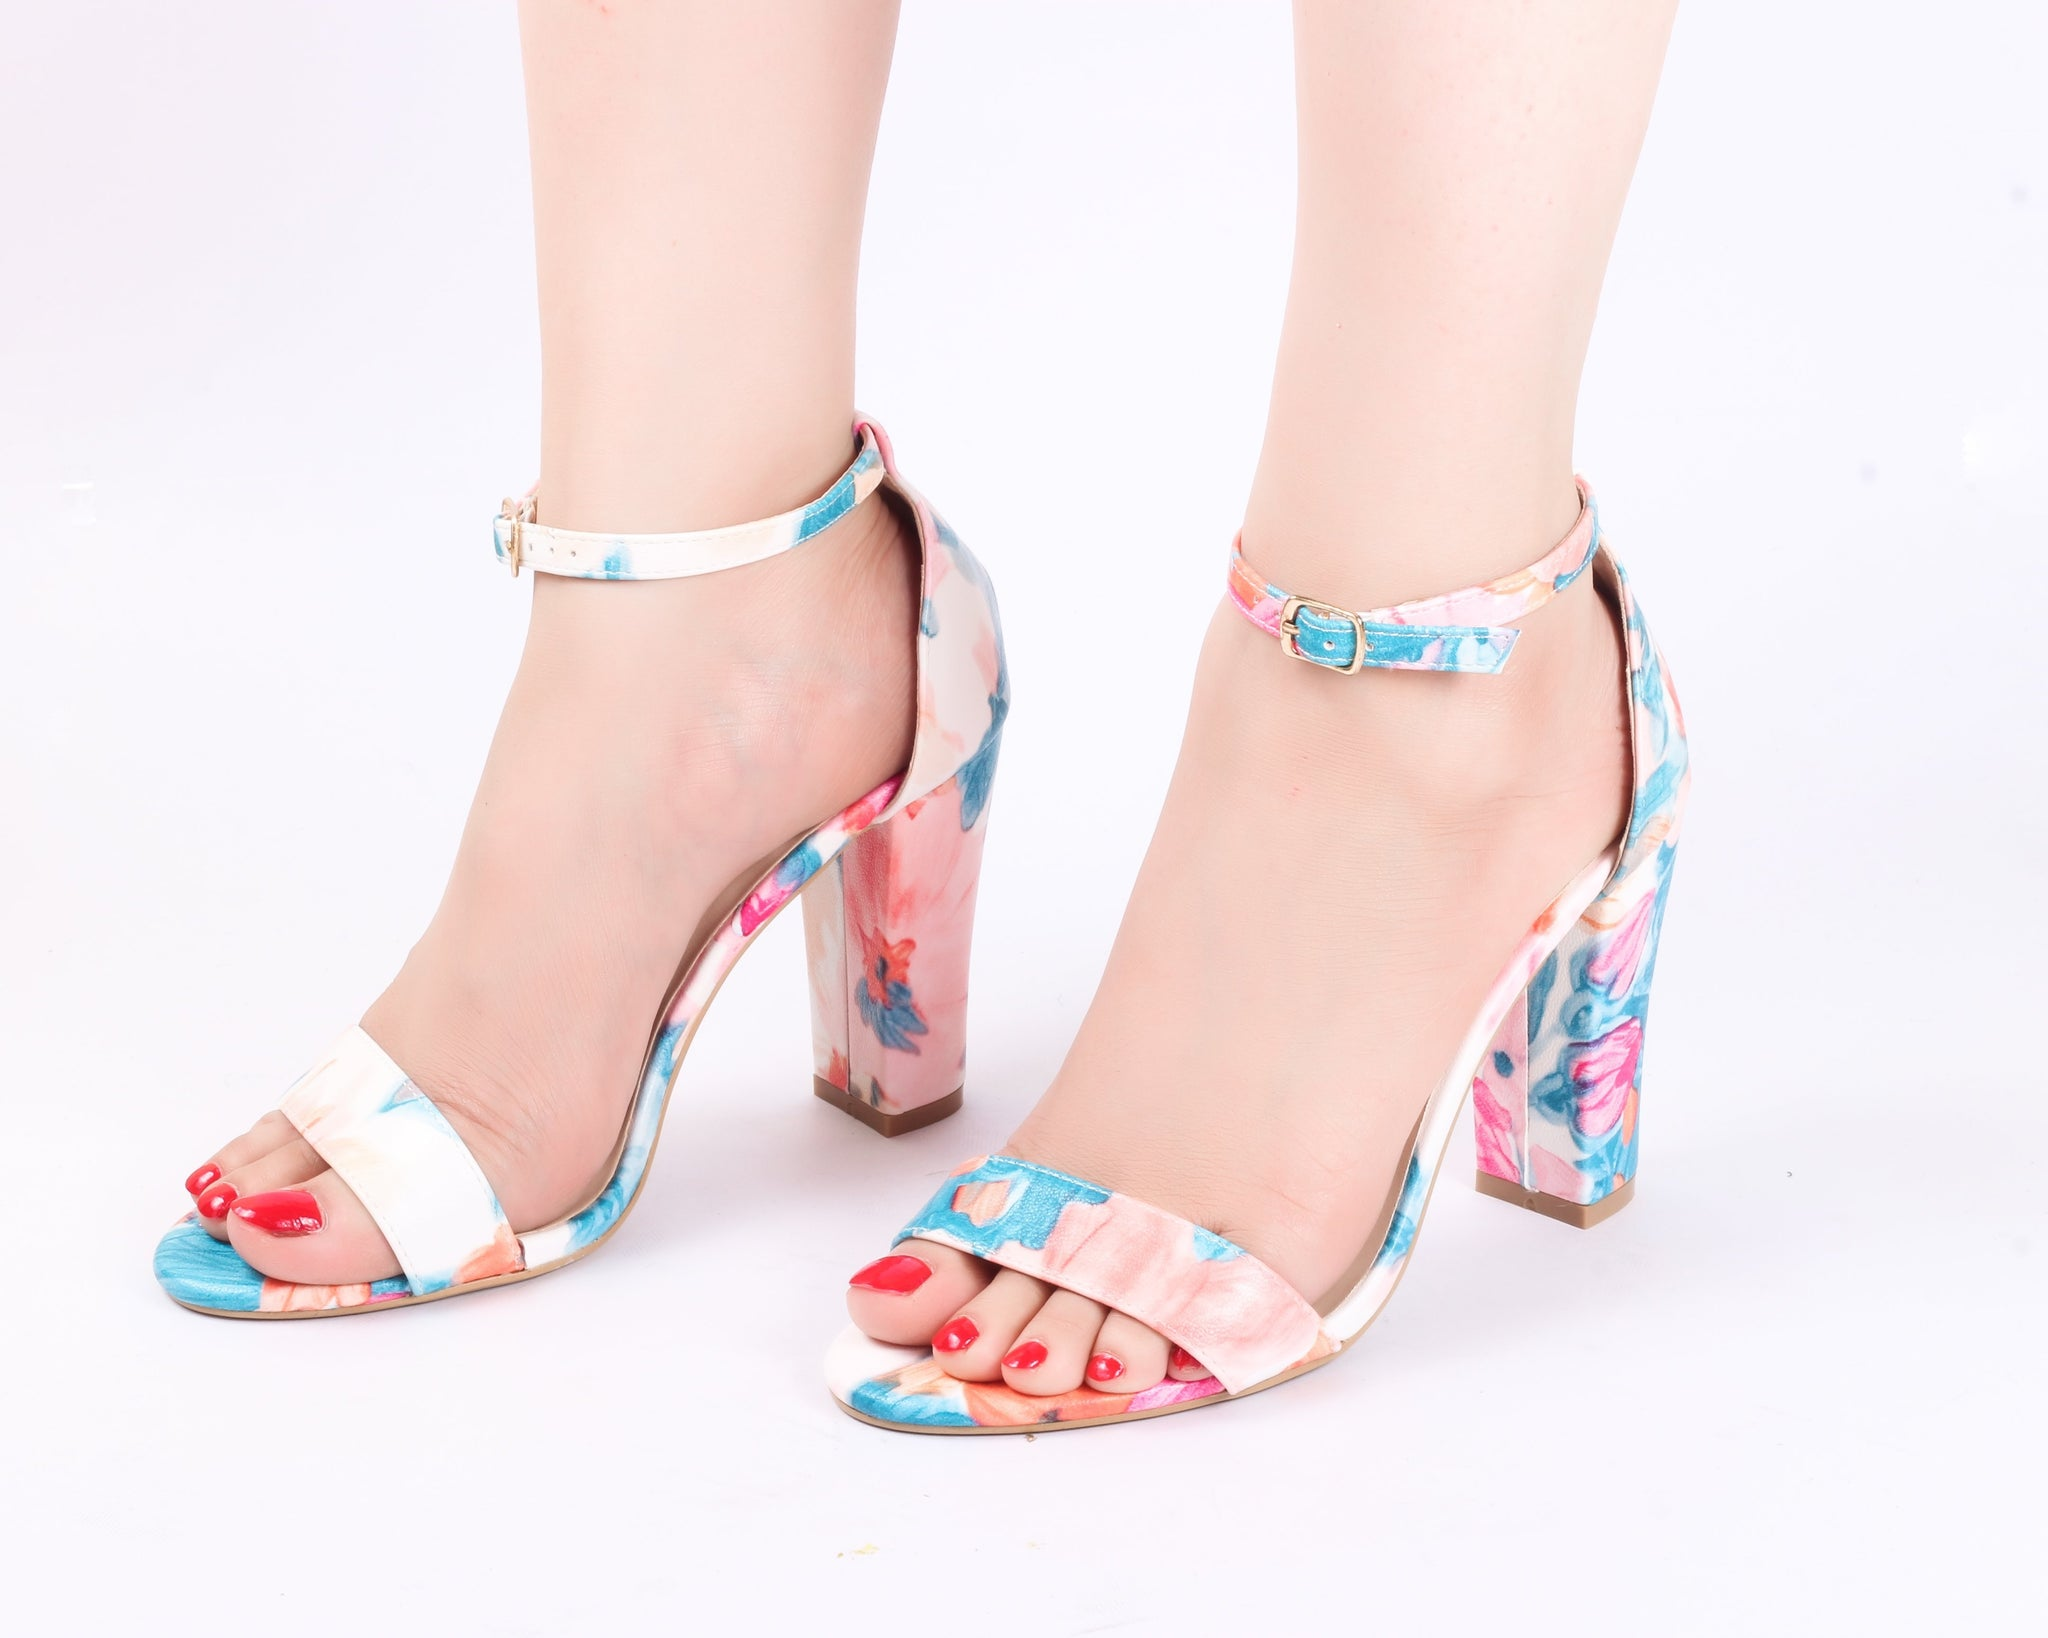 Colorful | Sandals | High Heels | Dech Barrouci